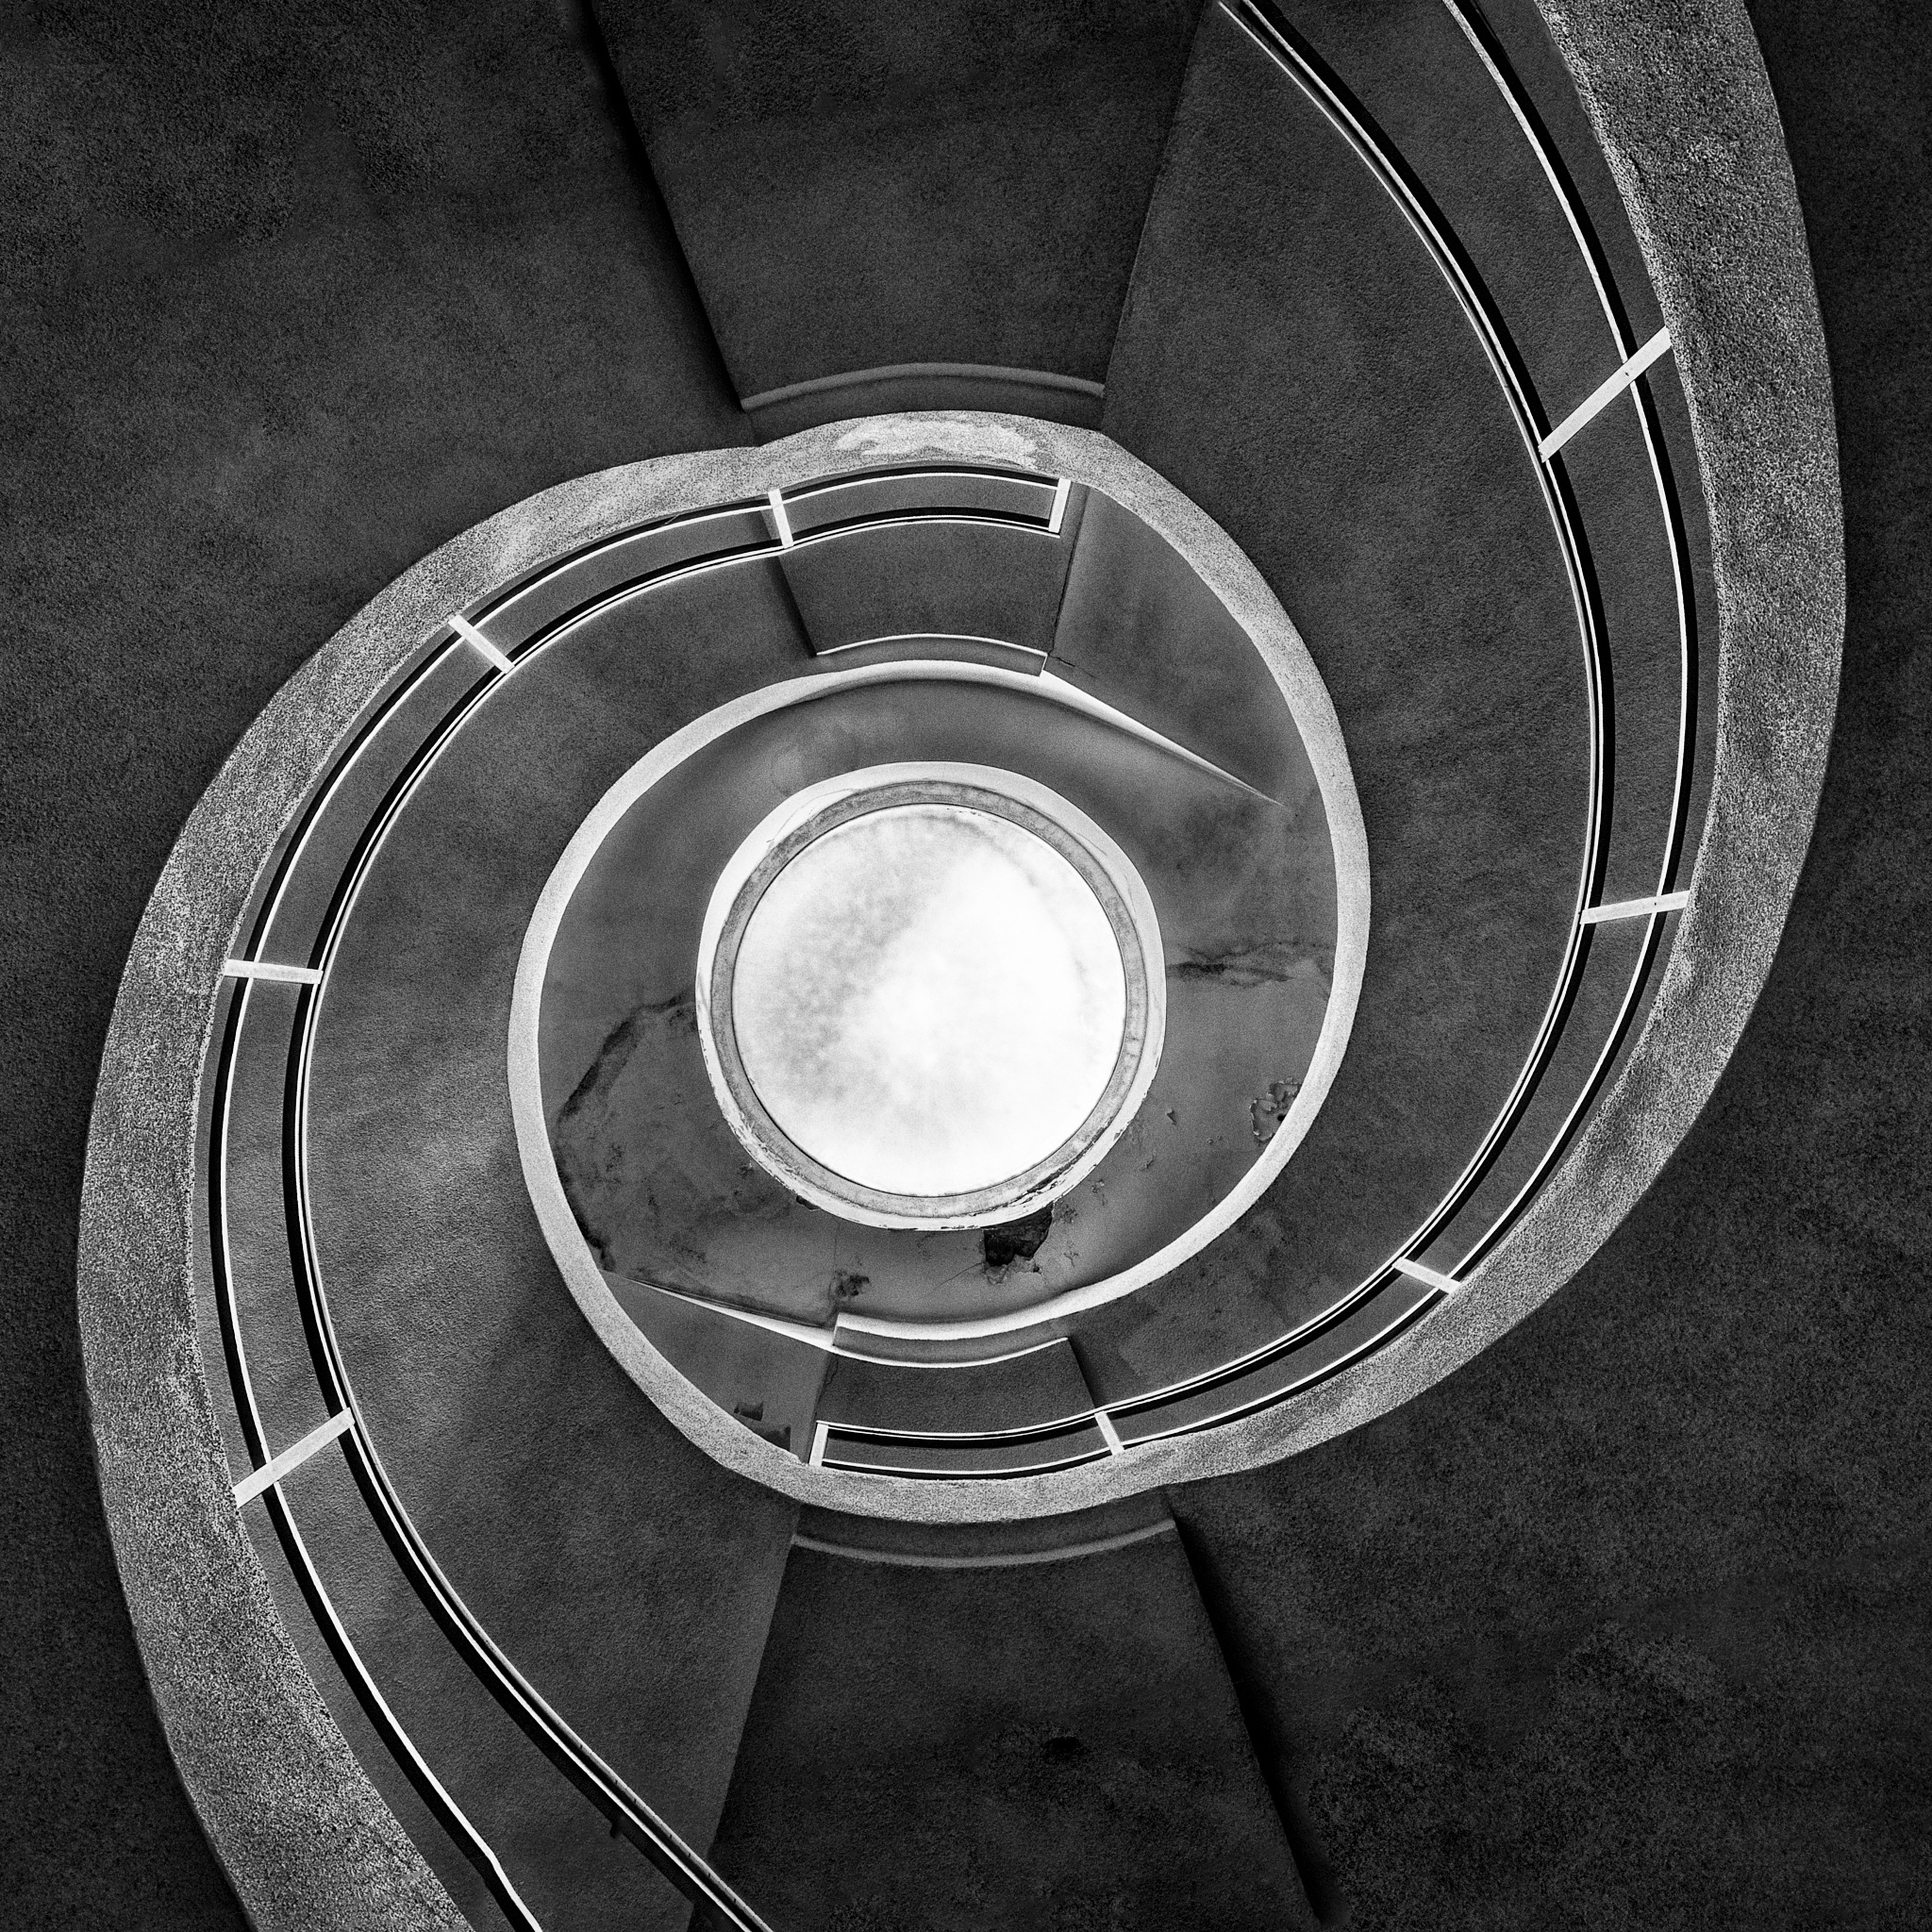 Double twisted stairs by Joël Arys